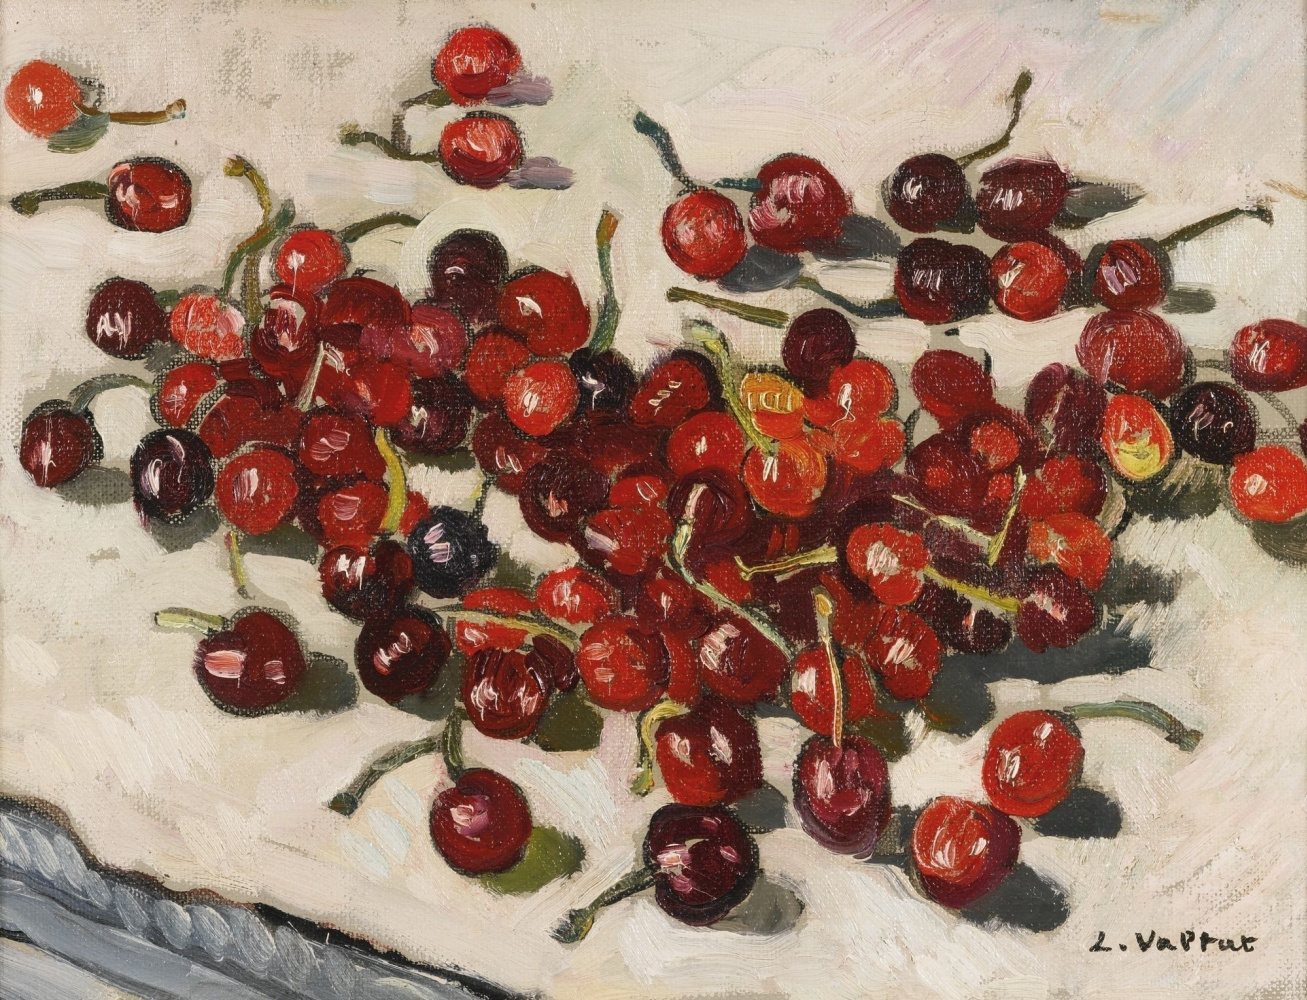 Life Is Just A Bowl Of Cherries Top 10 Paintings Rendering Cherries